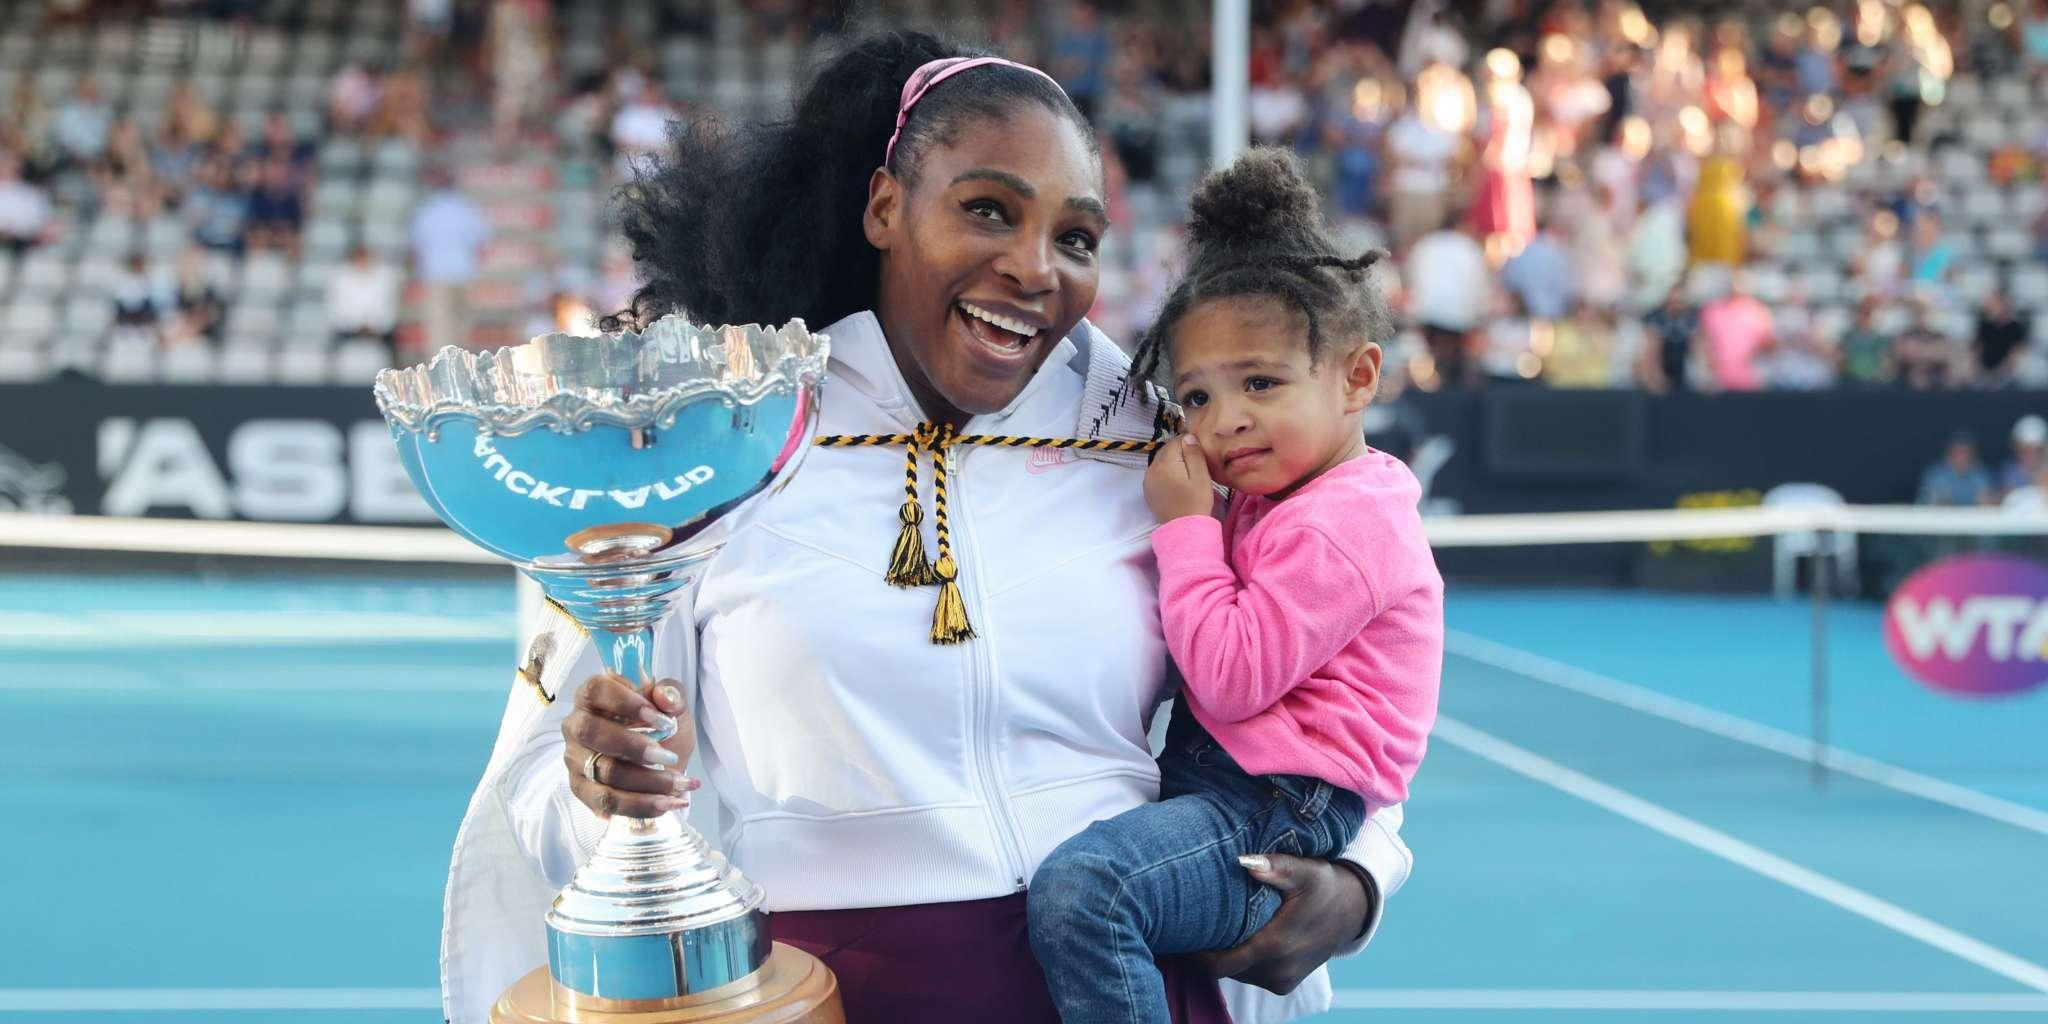 Serena Williams Proves She And 2-Year-Old Daughter, Olympia, Wear 'The Same Size' By Trying On The Toddler's Top In This Funny Video!